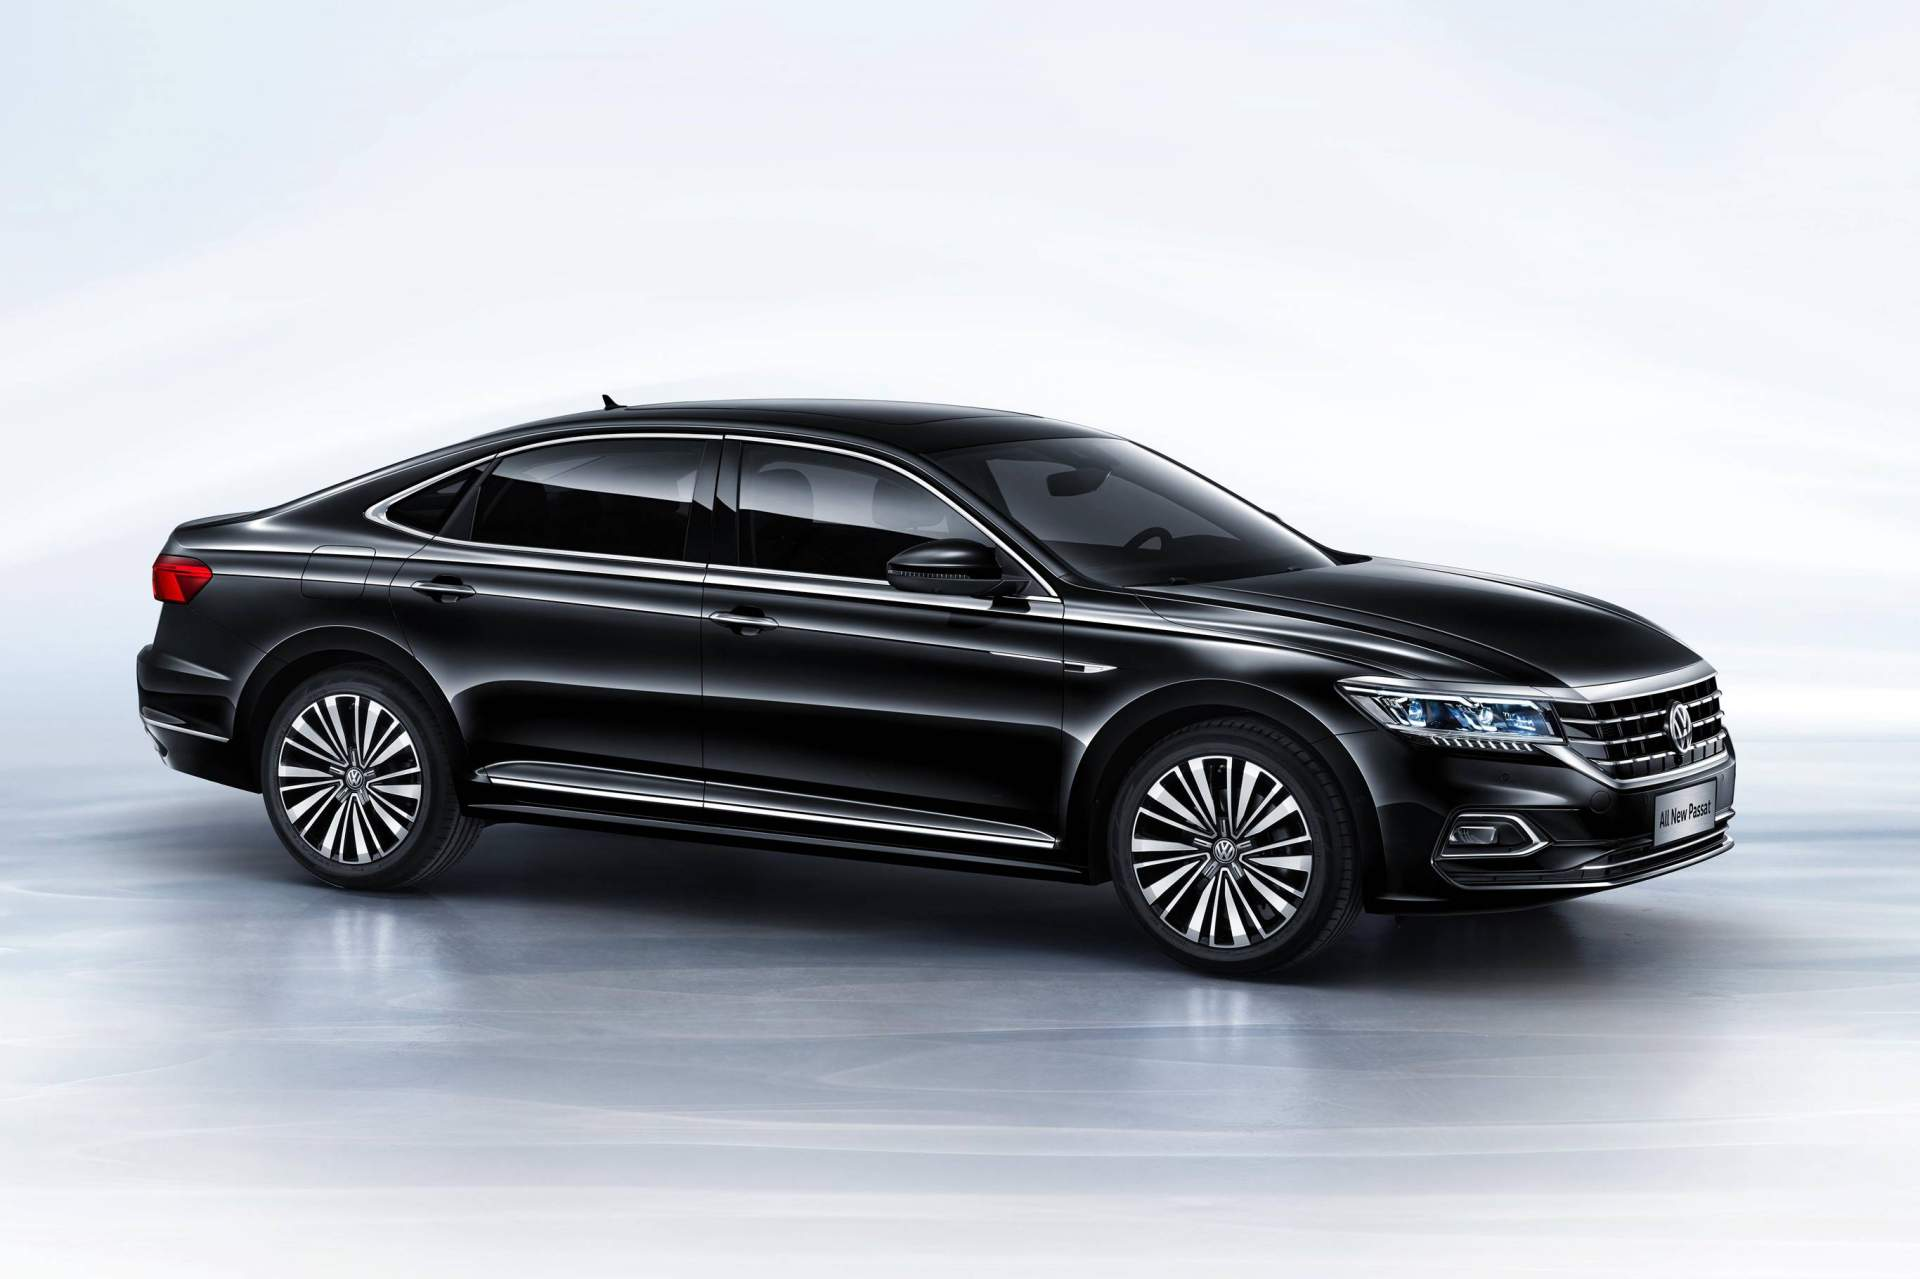 2019 volkswagen passat revealed in china previews u s model autoevolution. Black Bedroom Furniture Sets. Home Design Ideas